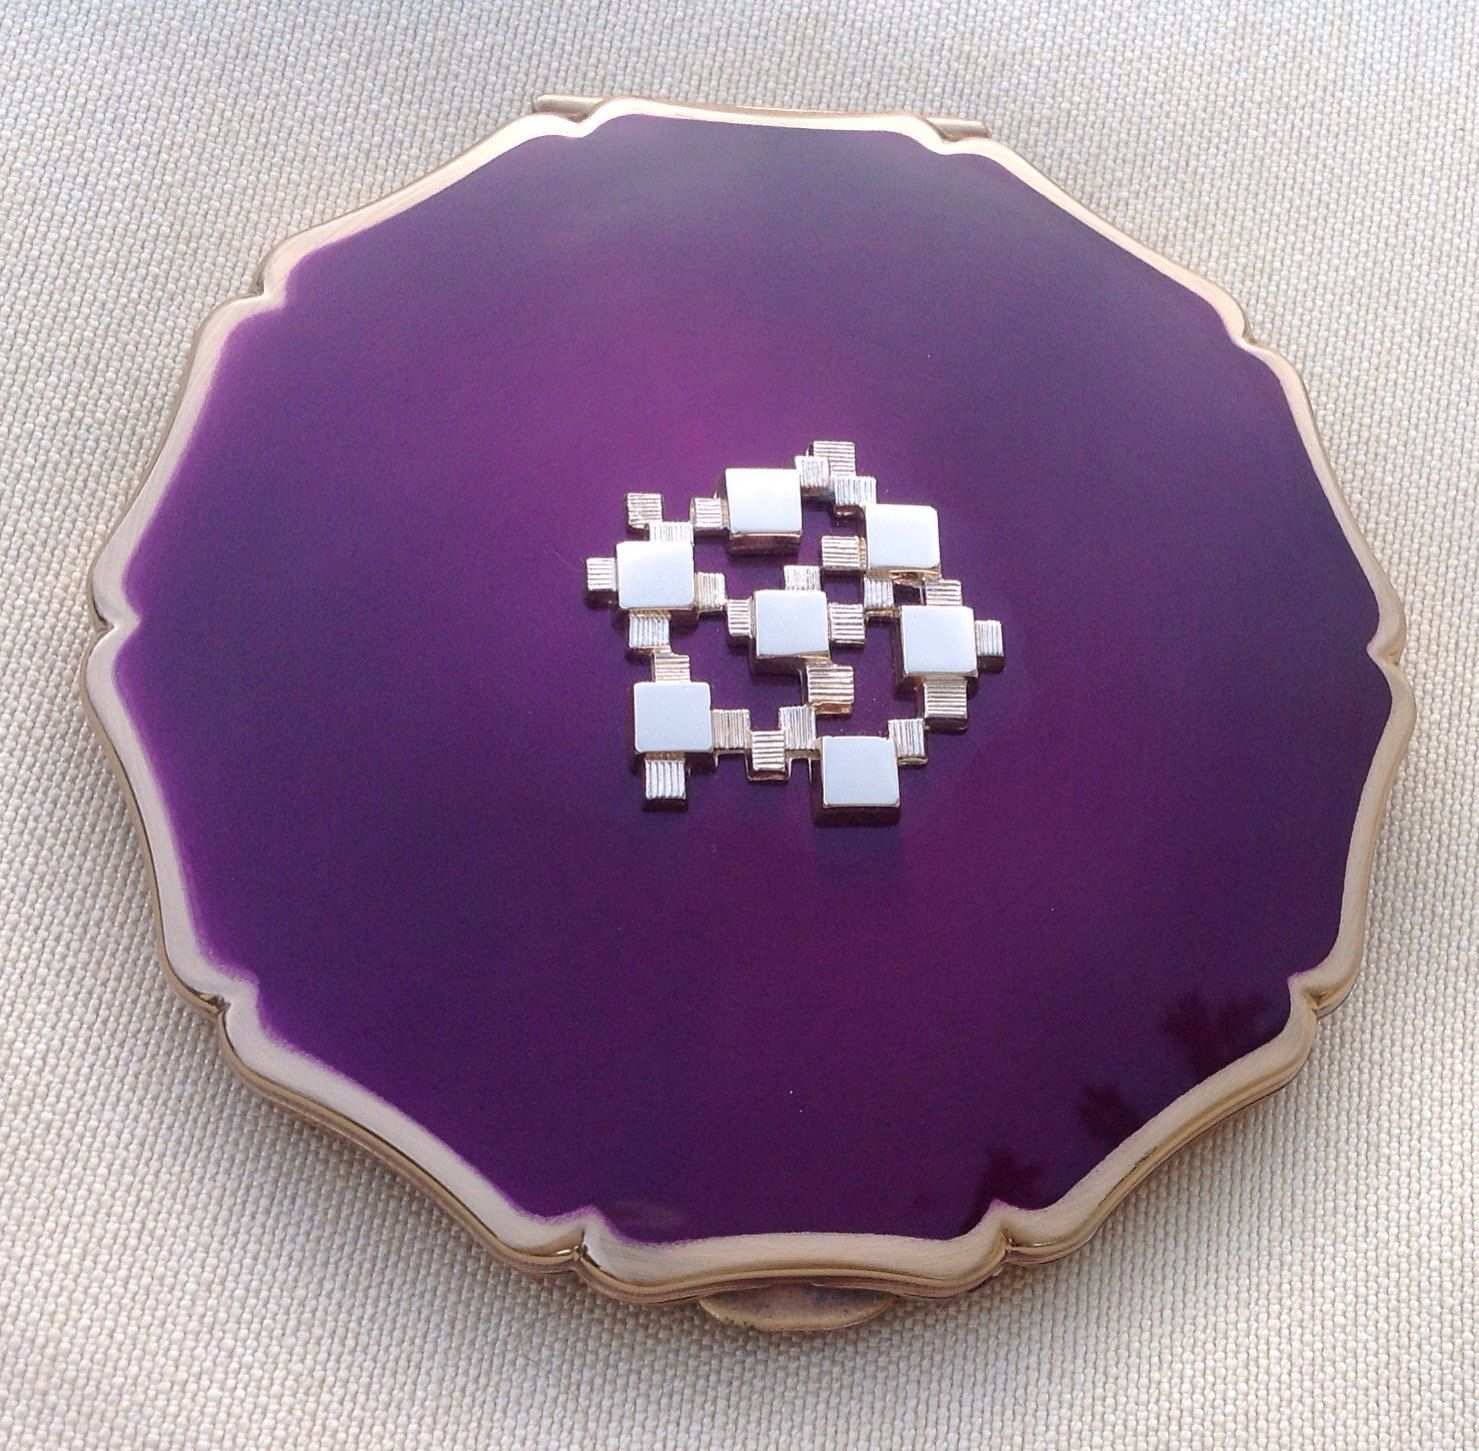 Stratton Queen Convertible Compact Vintage Powder 1970 S 80 Purple Handbag Mirror Christmas Gift By